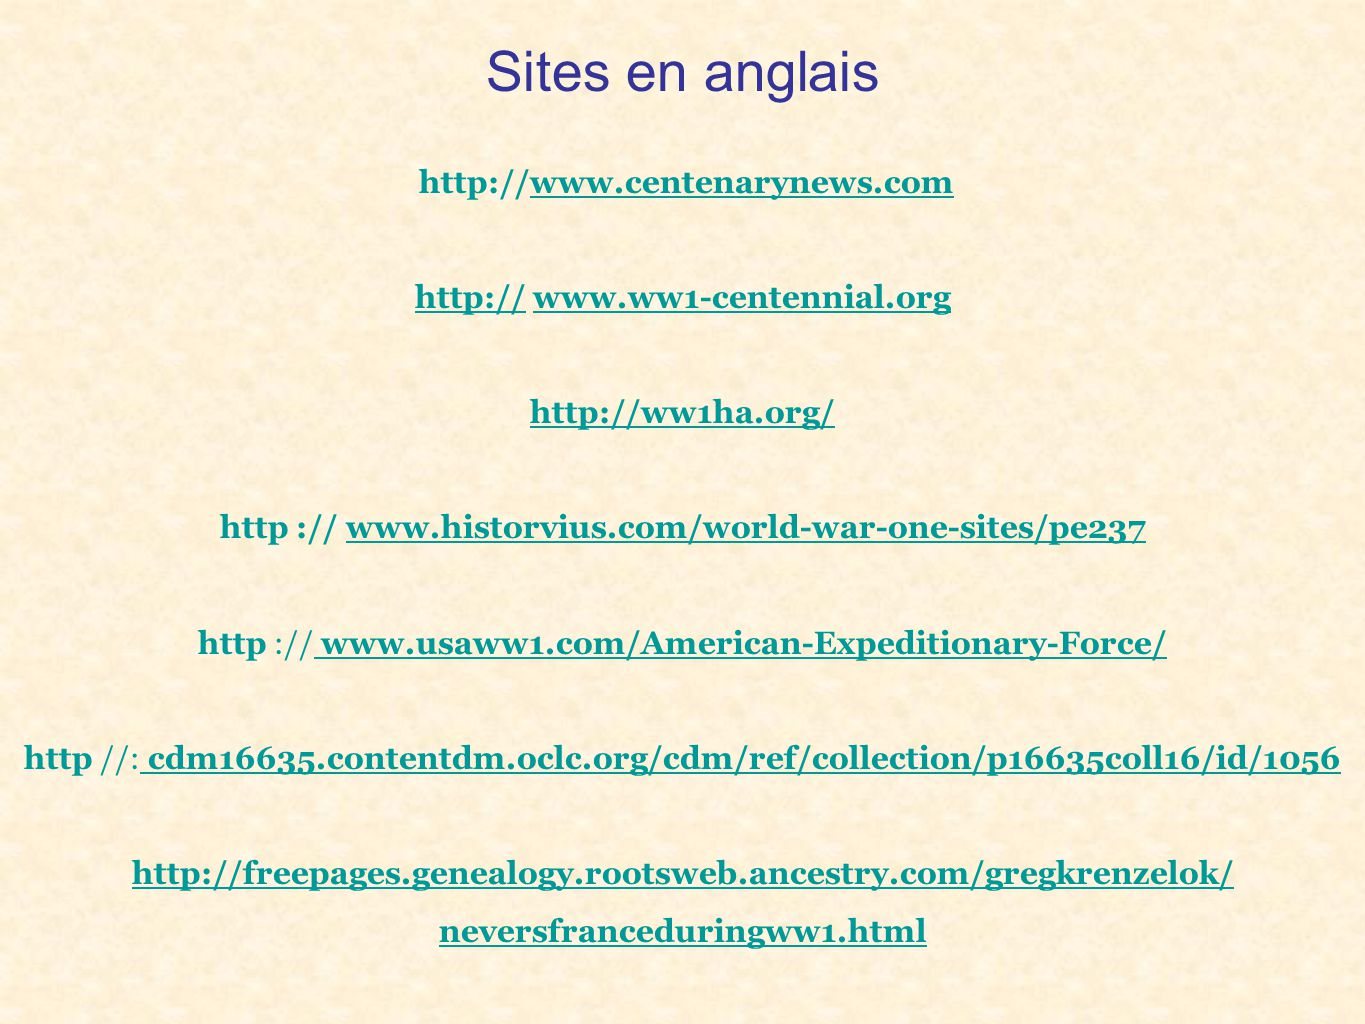 Sites en anglais http://www.centenarynews.comwww.centenarynews.com http:// www.ww1-centennial.orgwww.ww1-centennial.org http://ww1ha.org/ http :// www.historvius.com/world-war-one-sites/pe237www.historvius.com/world-war-one-sites/pe237 http :// www.usaww1.com/American-Expeditionary-Force/www.usaww1.com/American-Expeditionary-Force/ http //: cdm16635.contentdm.oclc.org/cdm/ref/collection/p16635coll16/id/1056cdm16635.contentdm.oclc.org/cdm/ref/collection/p16635coll16/id/1056 http://freepages.genealogy.rootsweb.ancestry.com/gregkrenzelok/ neversfranceduringww1.neversfranceduringww1.html